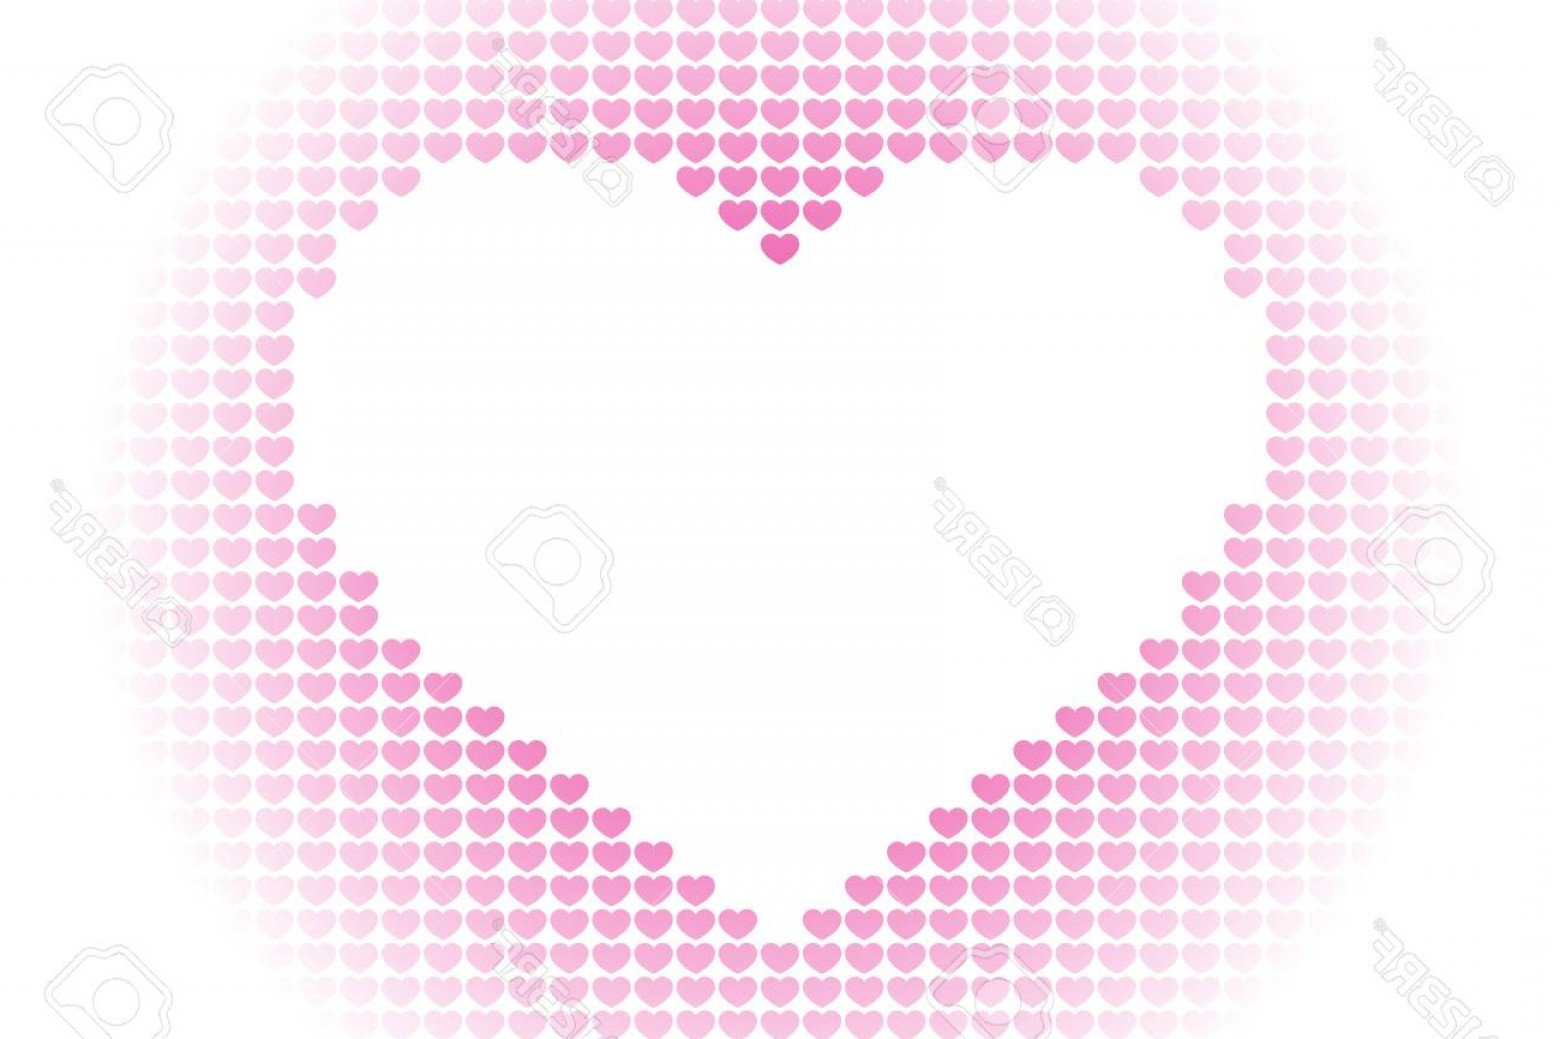 Cool Vector Hearts Pattern Symbol Pattern: Photostock Vector Background Material Wallpaper Heart Pattern Symbol Pattern Patterns Affection Love Copy Space Cute L